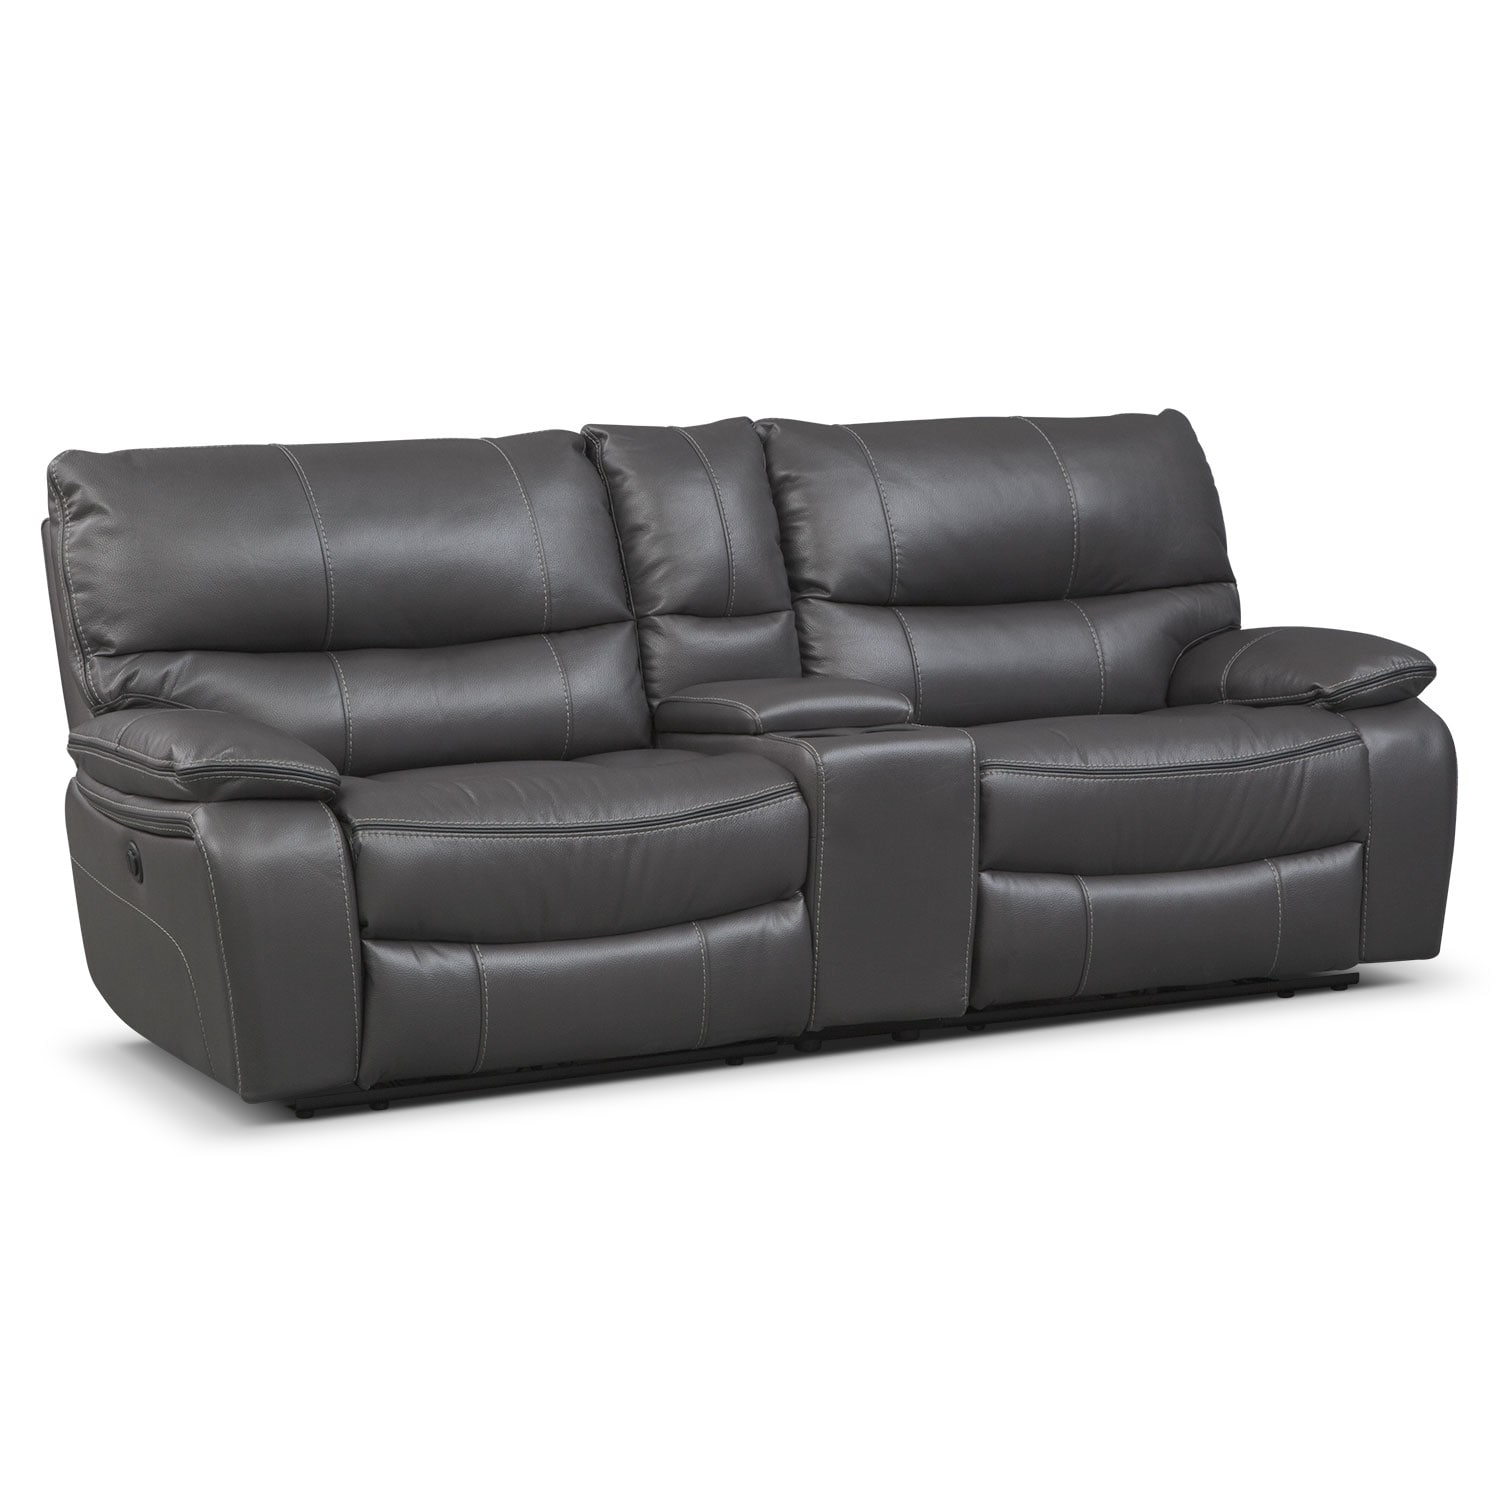 Living Room Furniture - Orlando 3 Pc. Power Reclining Sectional